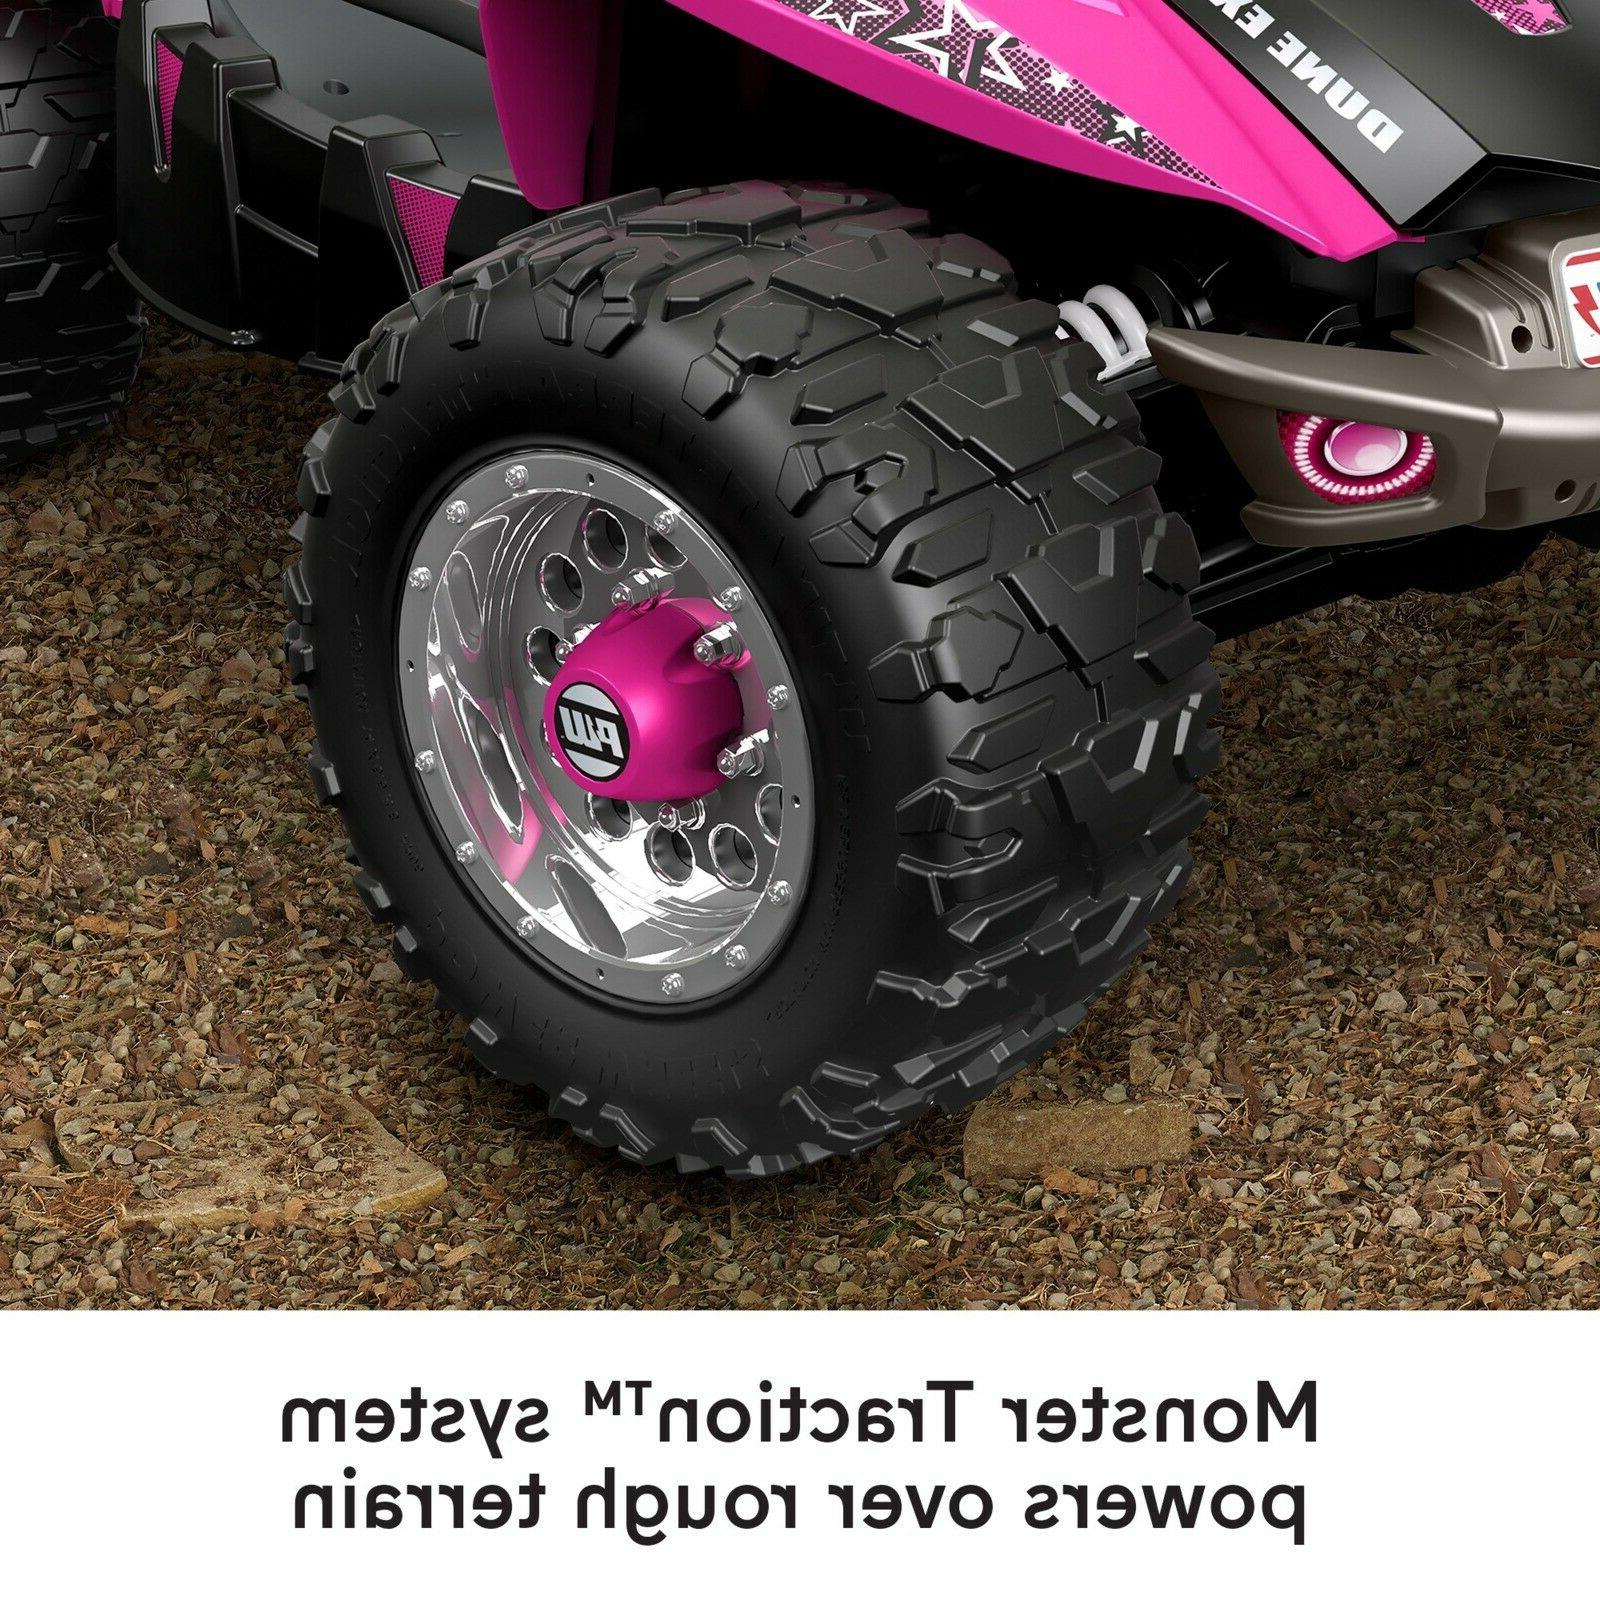 Power Racer Pink Electric Vehicle Car Quad Ride On